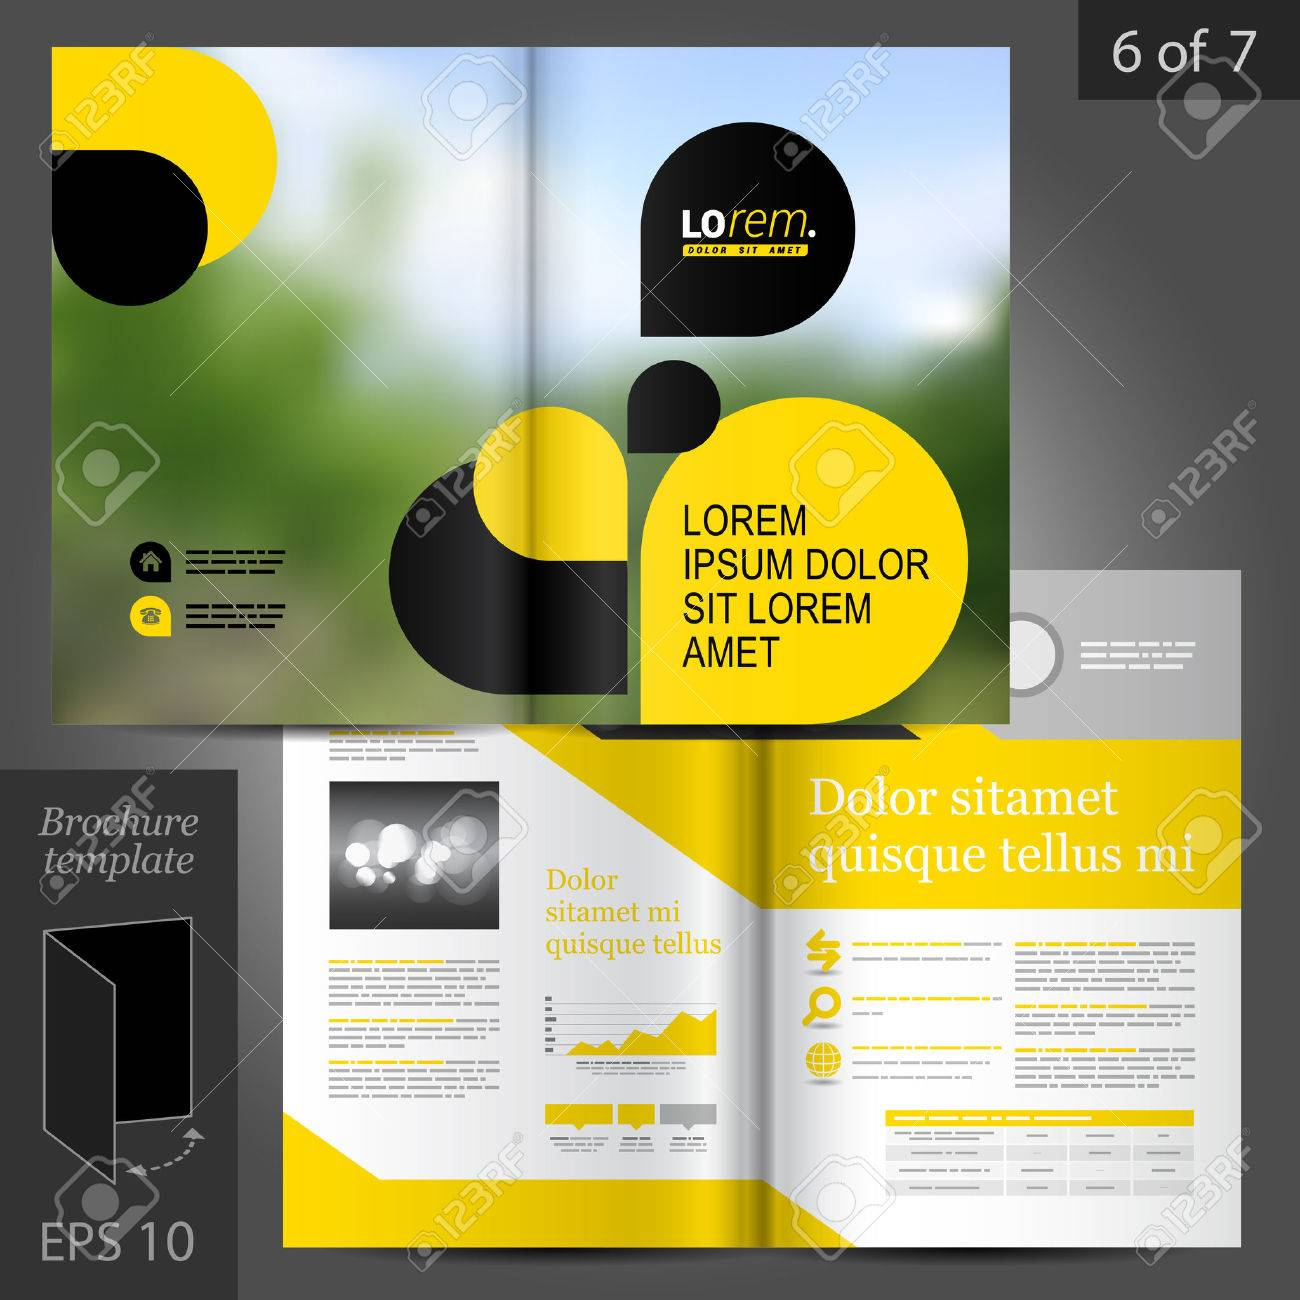 flyer template stock photos images royalty flyer template flyer template business vector brochure template design black and yellow geometric elements illustration